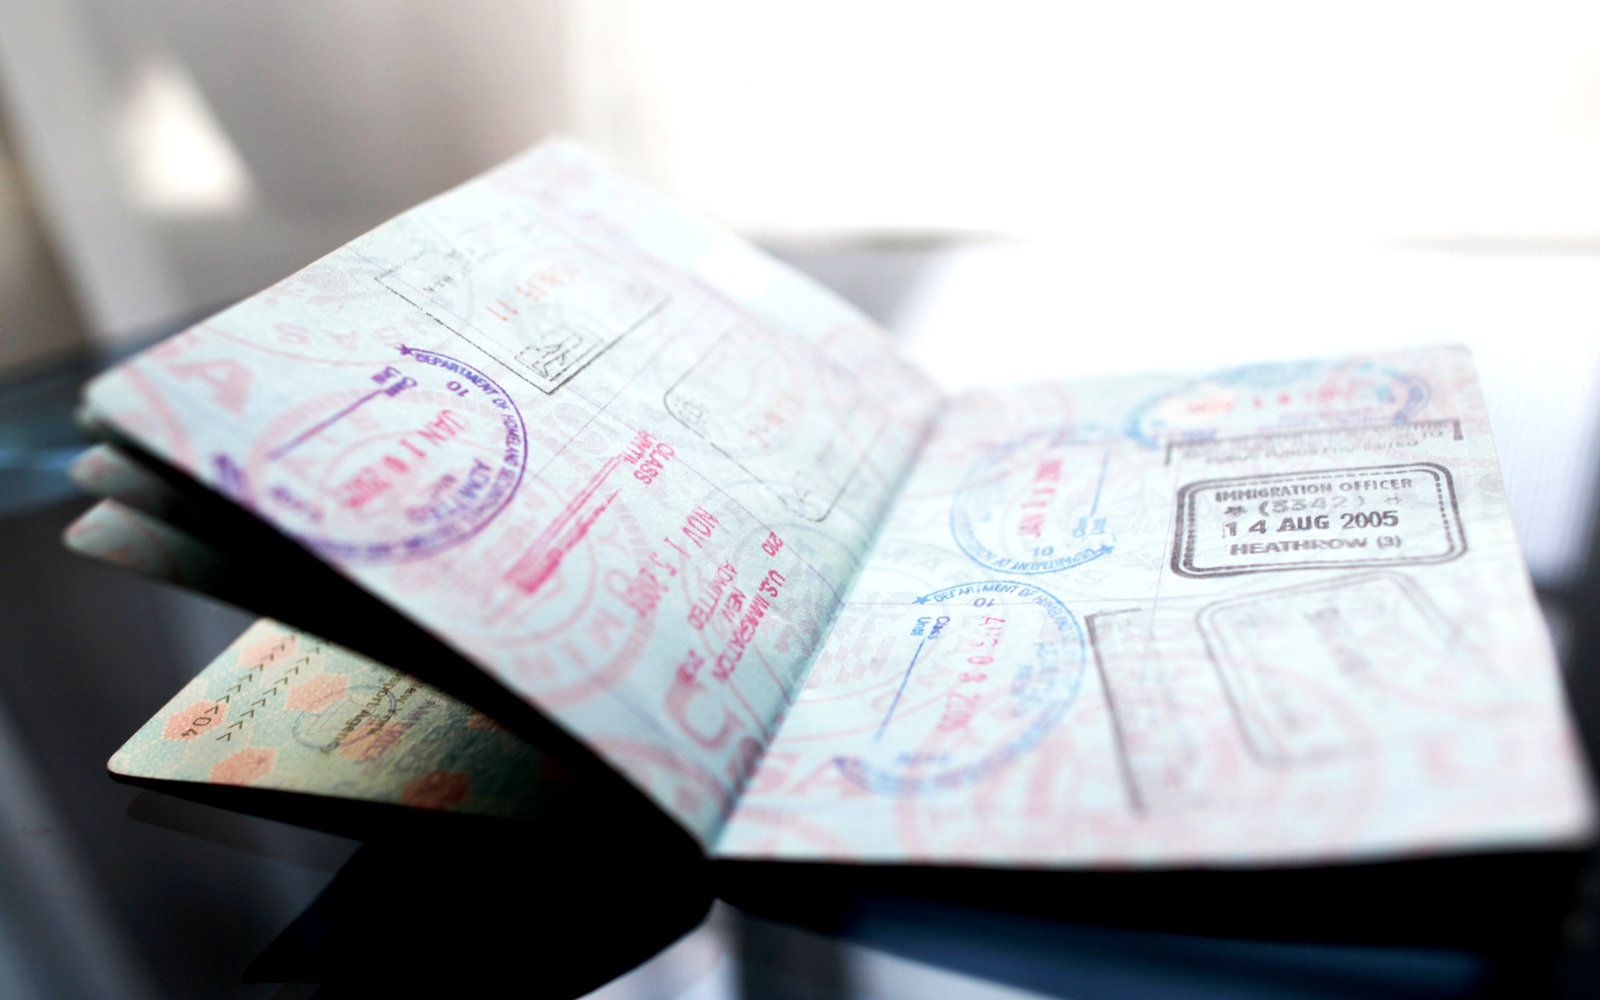 Passport pages with Stamps